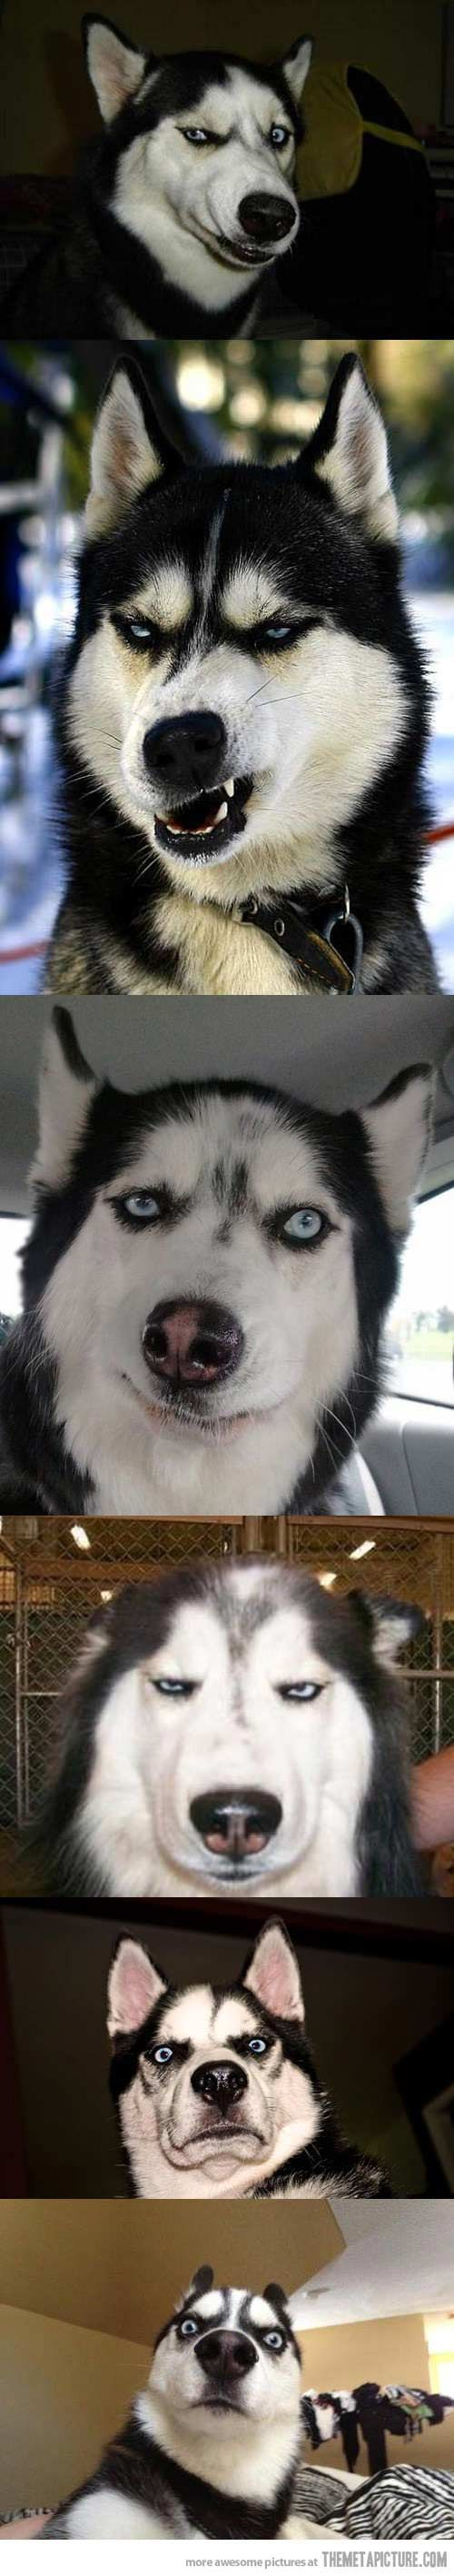 Huskies make the best faces…